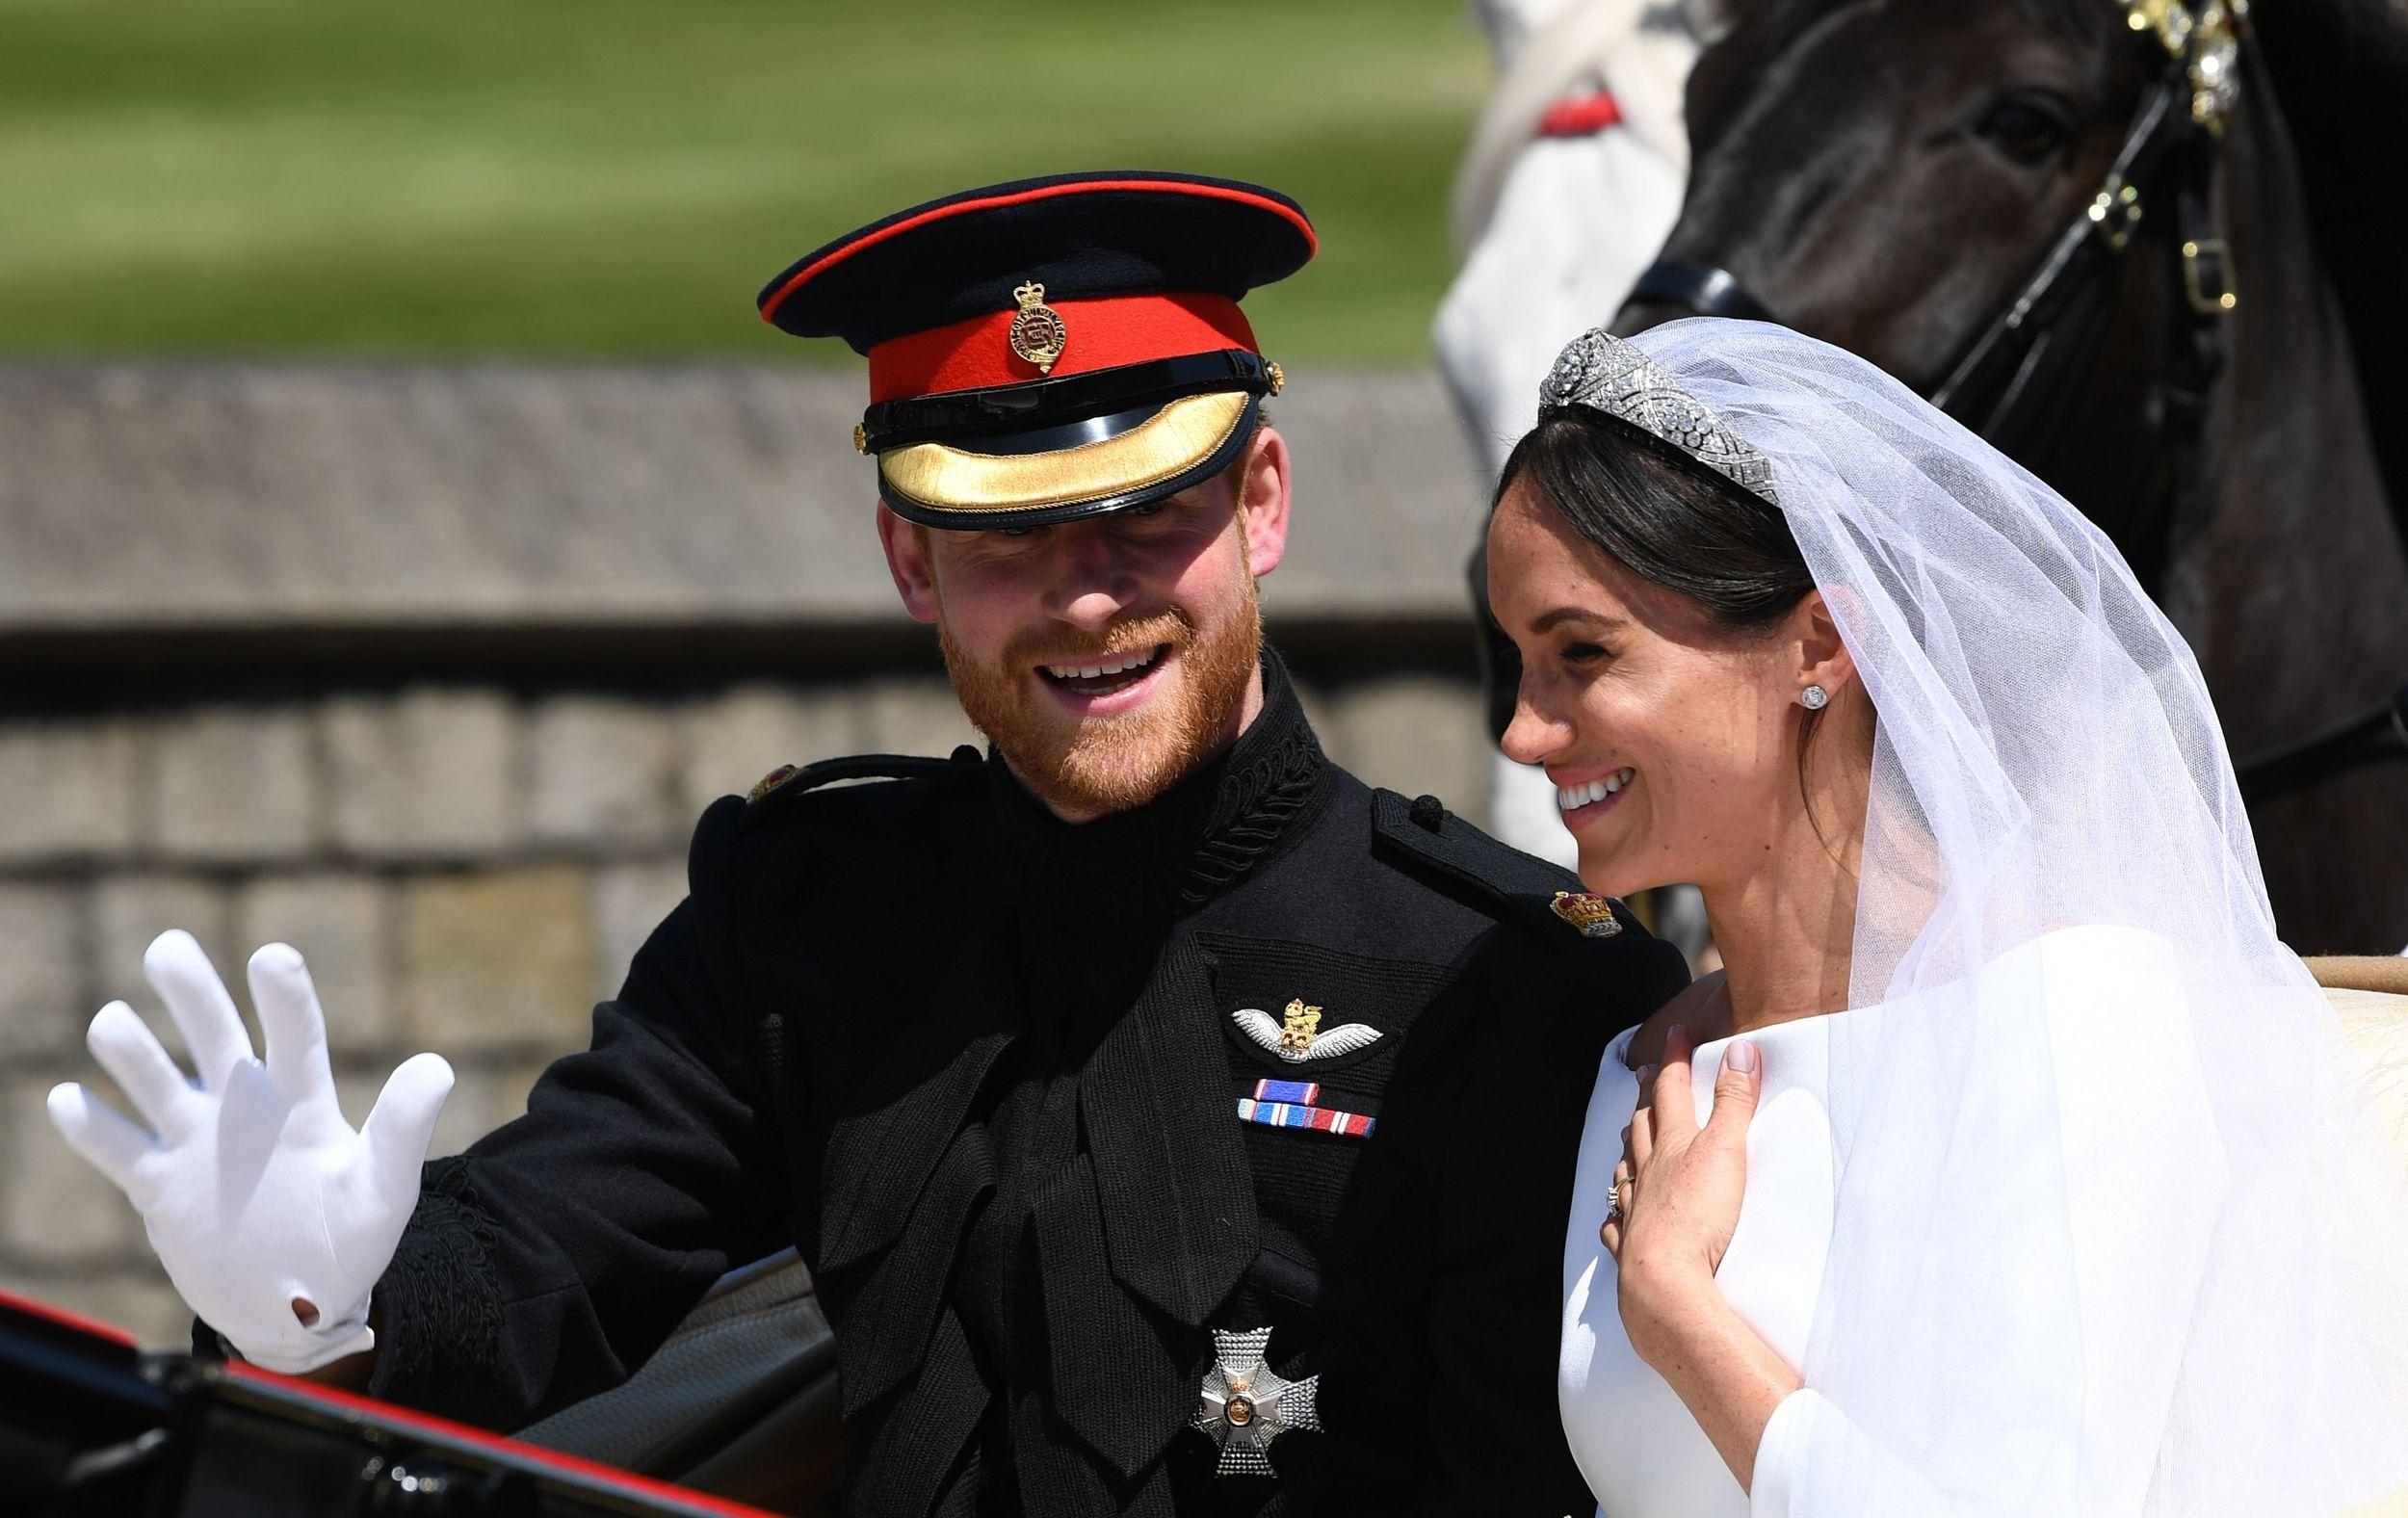 <p>Britain's Prince Harry, Duke of Sussex and his wife Meghan, Duchess of Sussex wave from the Ascot Landau Carriage during their carriage procession on Castle Hill outside Windsor Castle in Windsor, on May 19, 2018 after their wedding ceremony.</p>  <p>(Photo by Paul ELLIS / POOL / AFP)</p>